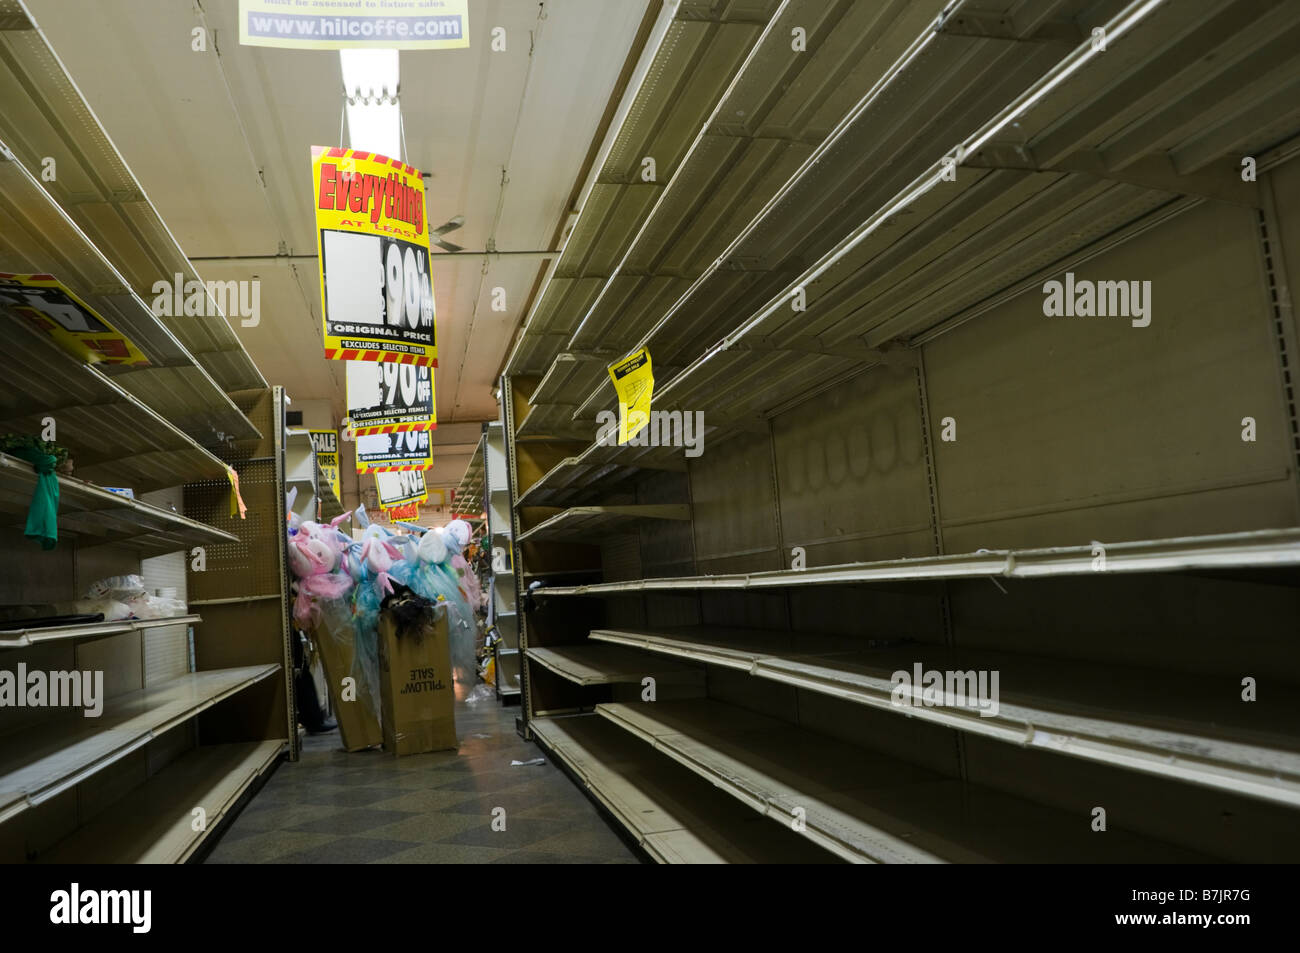 Empty shelves line the aisles on the last day of National Wholesale Liquidators' going out of business sale - Stock Image